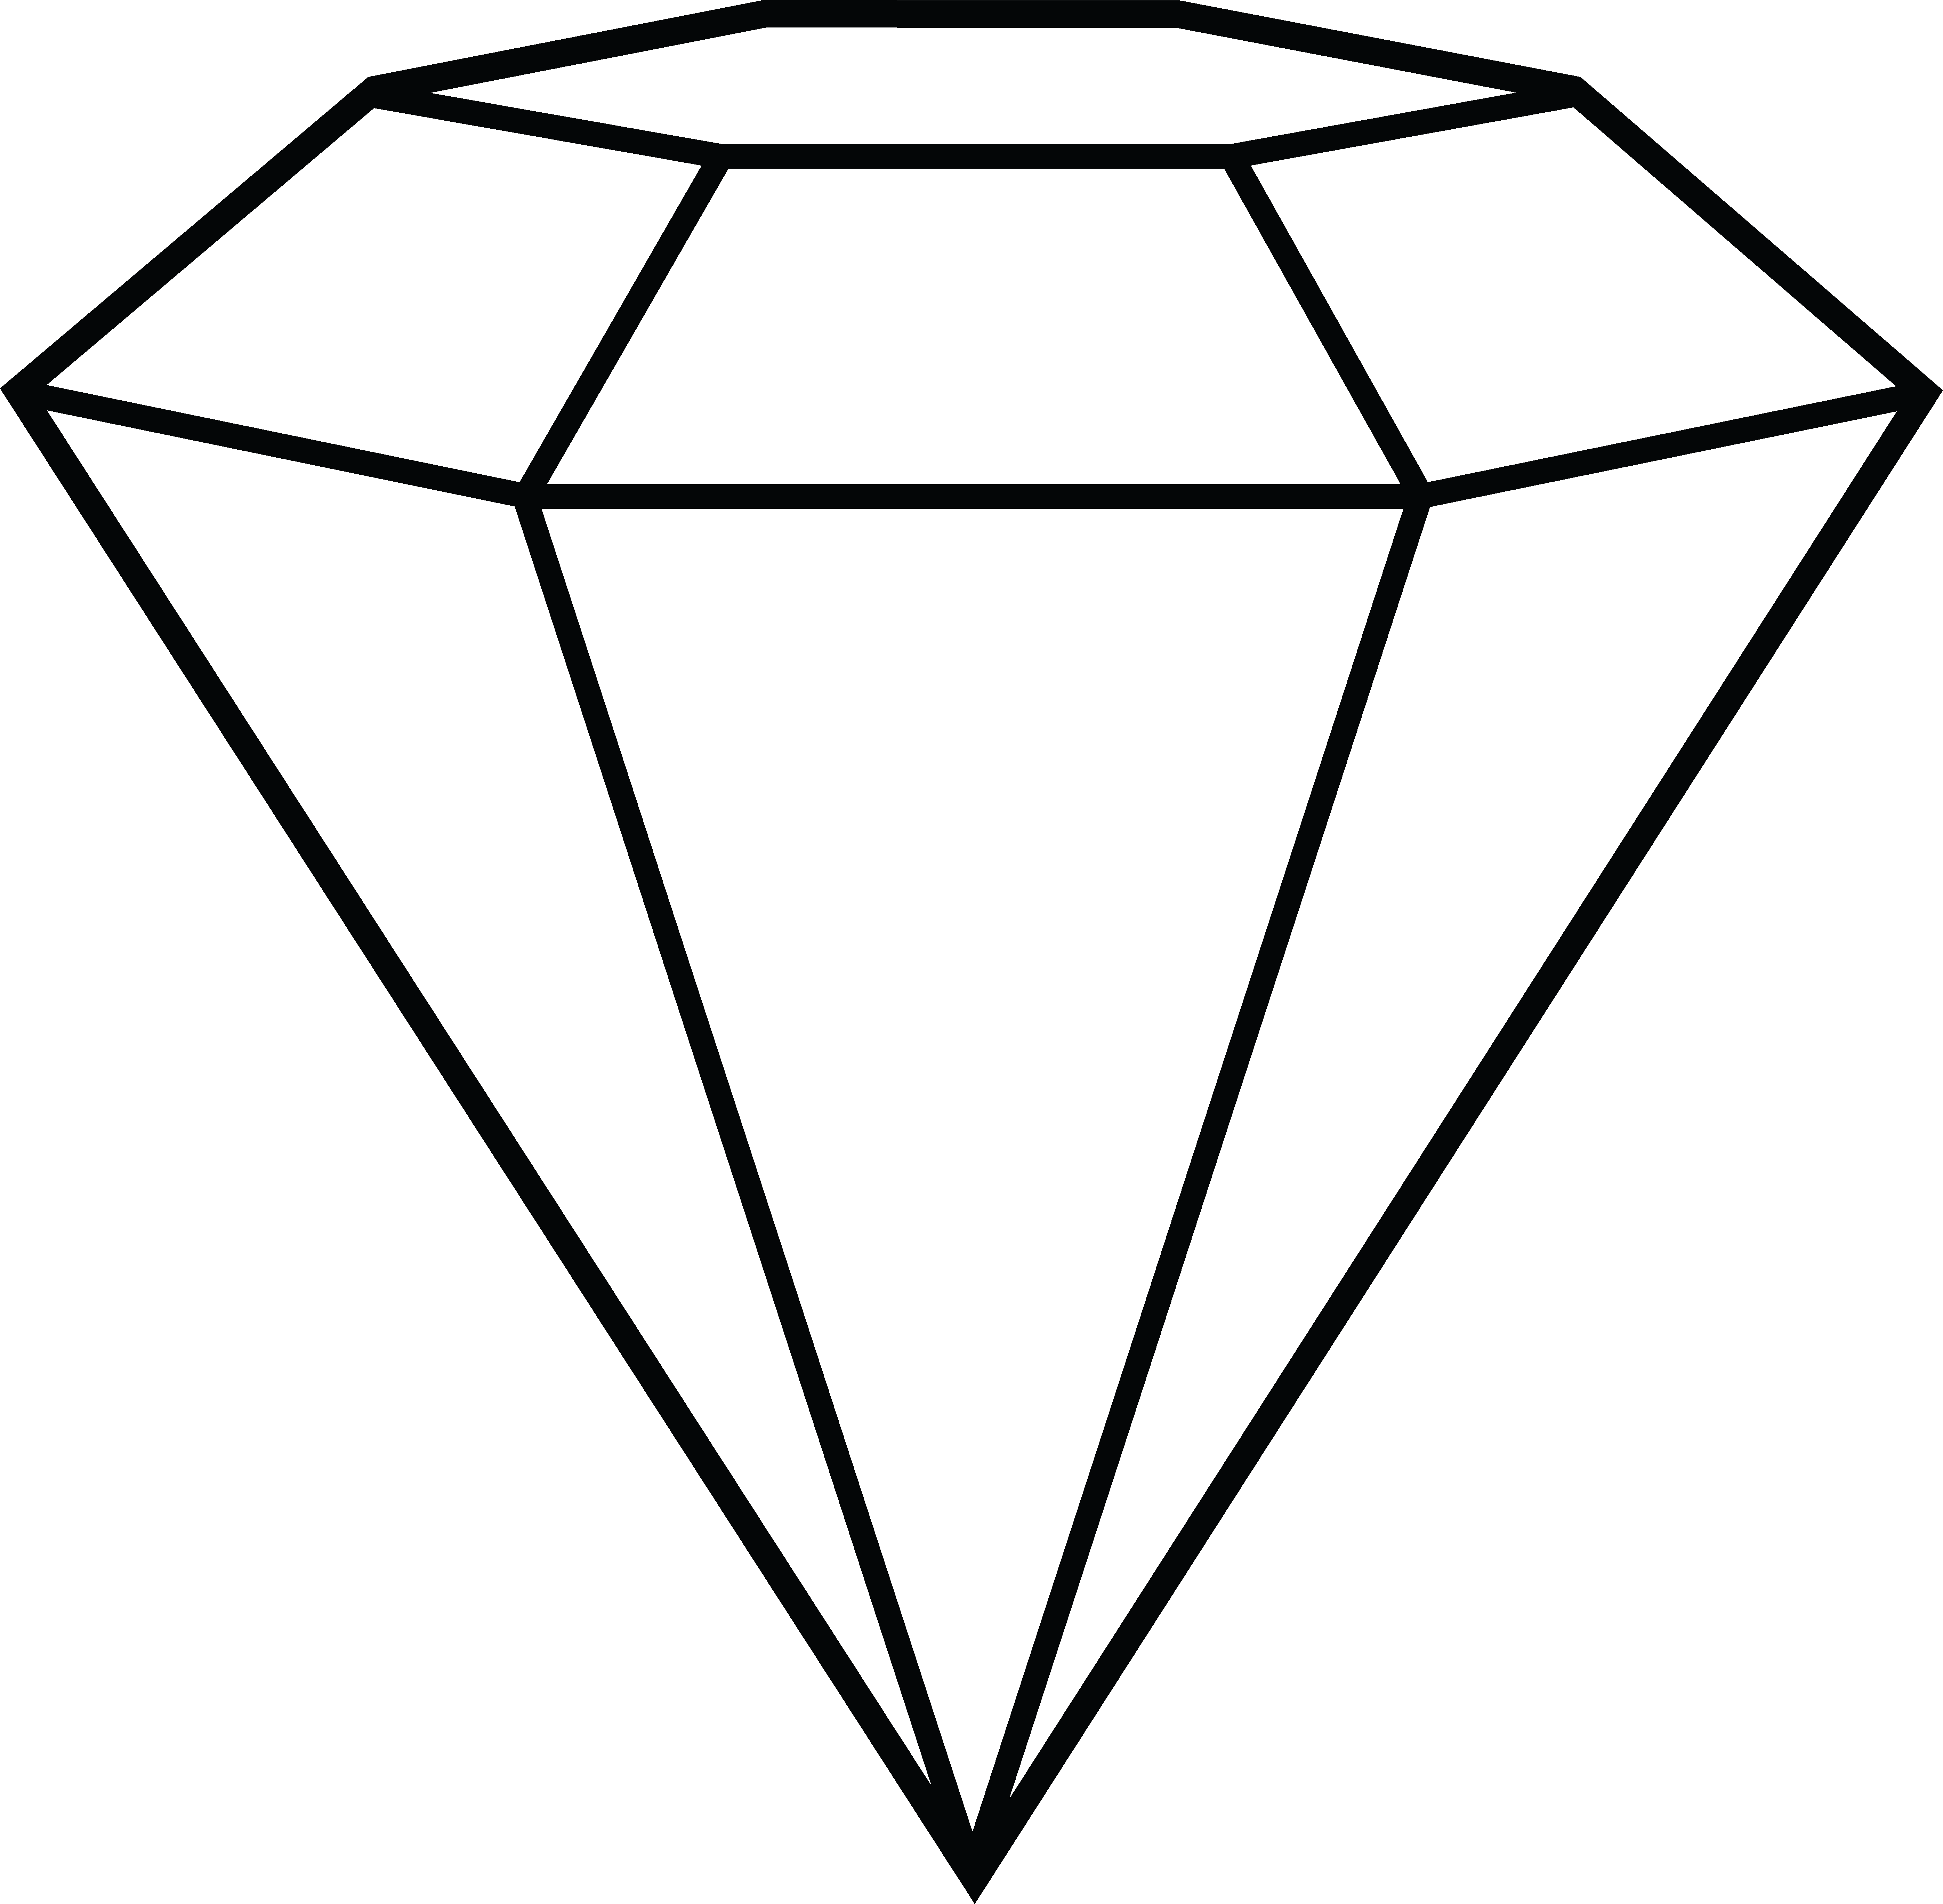 graphic free Diamonds clipart. Diamond lineart graphic design.